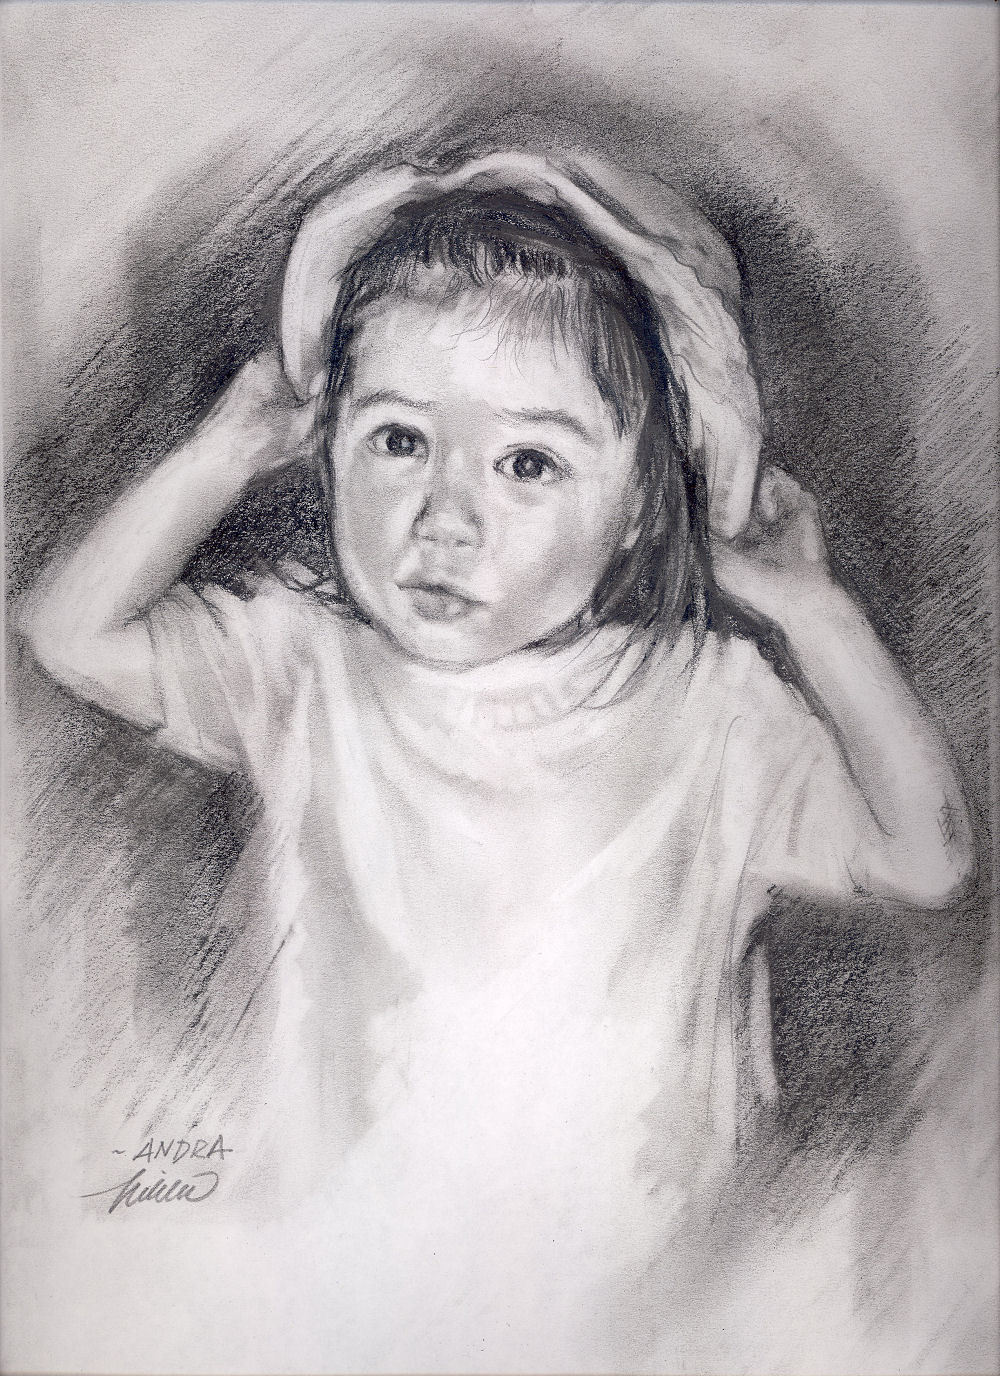 Andra's New Hat, 11 x 14 inches graphite on paper